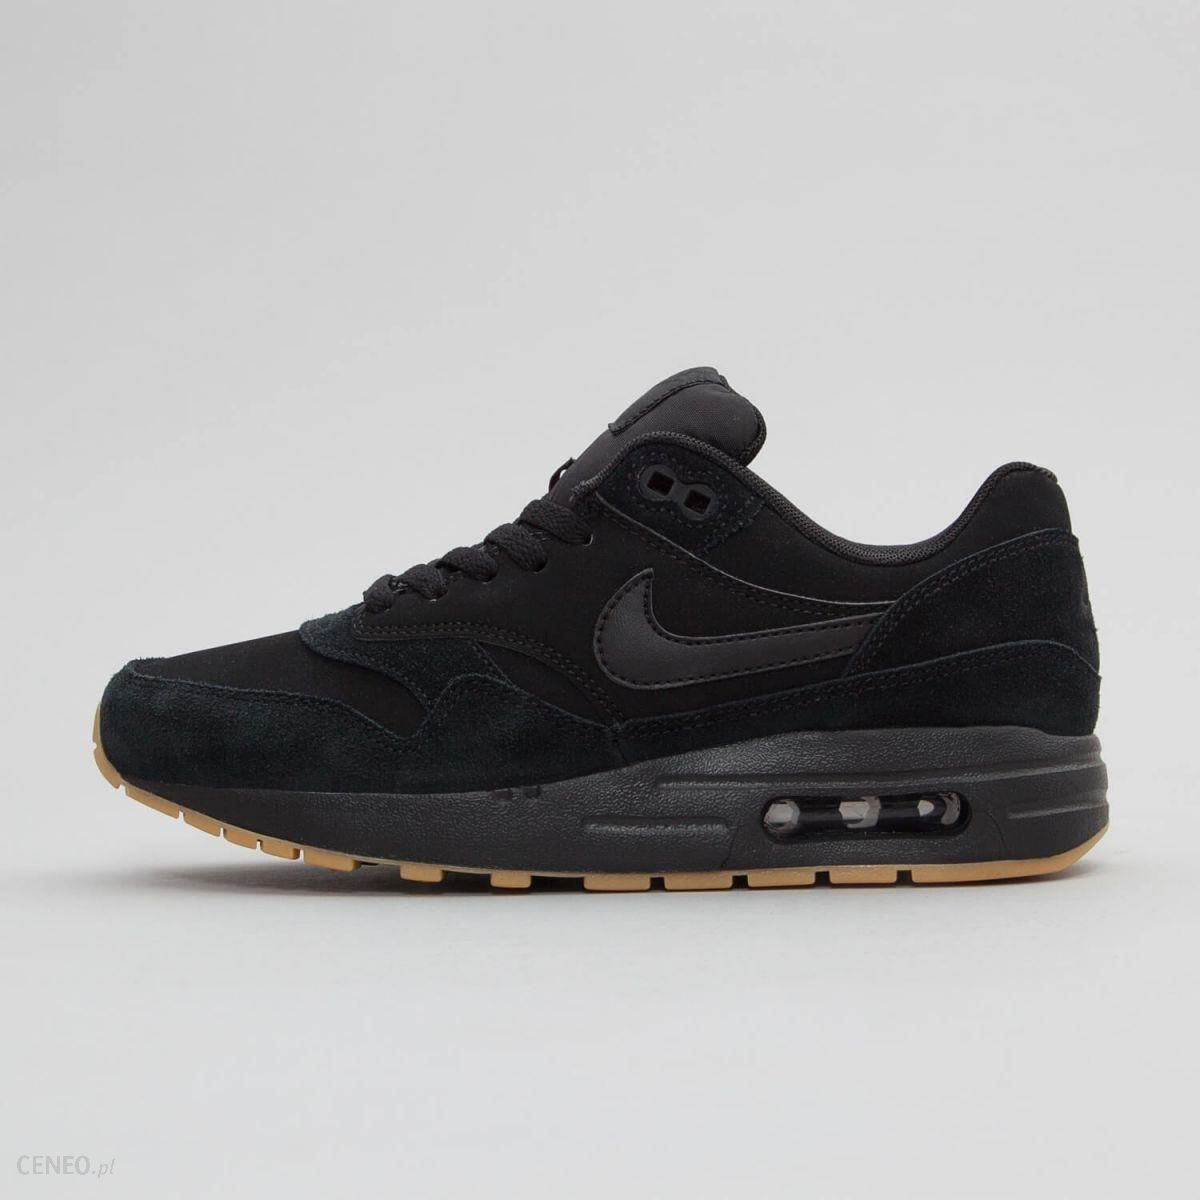 Nike AIR MAX 1 (GS) 807602 008 Ceny i opinie Ceneo.pl